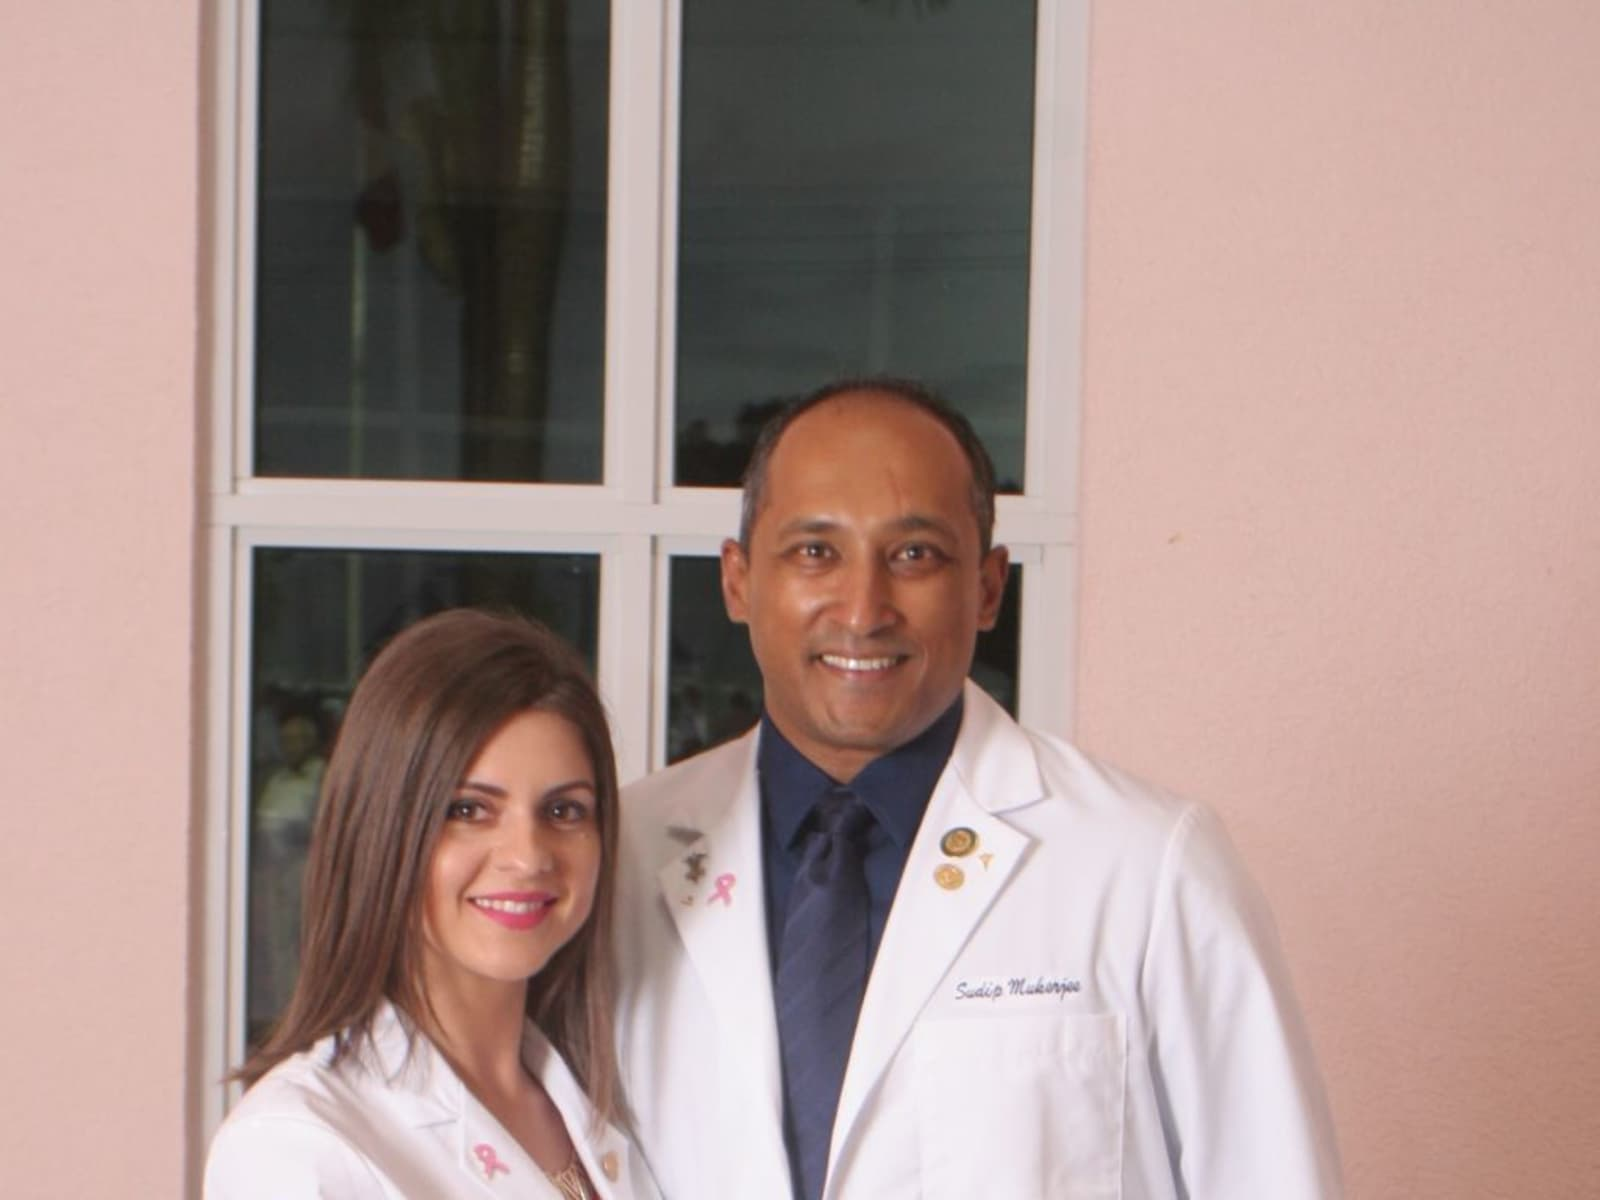 Sudip & Lilla from Fort Lauderdale, Florida, United States